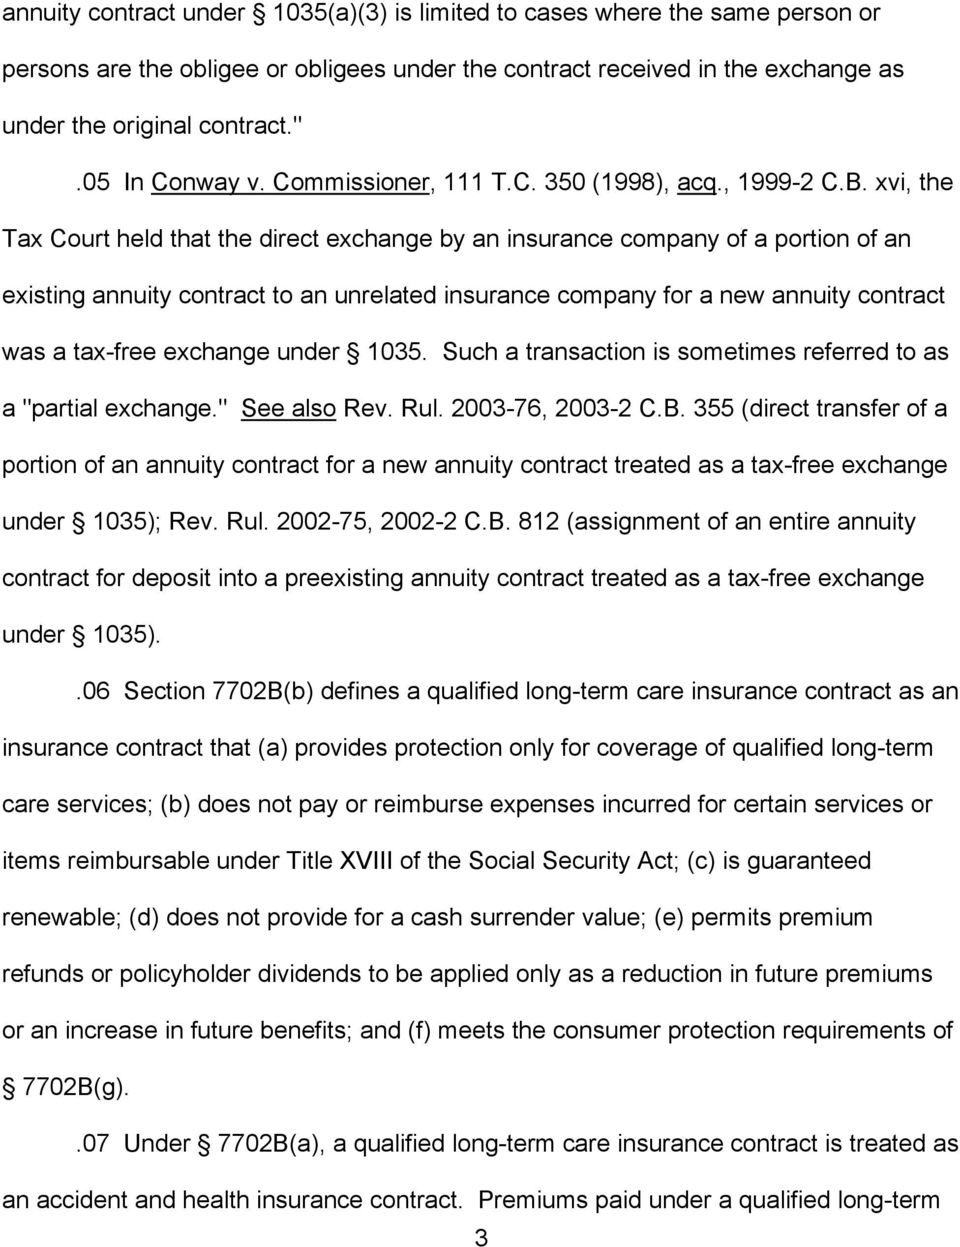 xvi, the Tax Court held that the direct exchange by an insurance company of a portion of an existing annuity contract to an unrelated insurance company for a new annuity contract was a tax-free